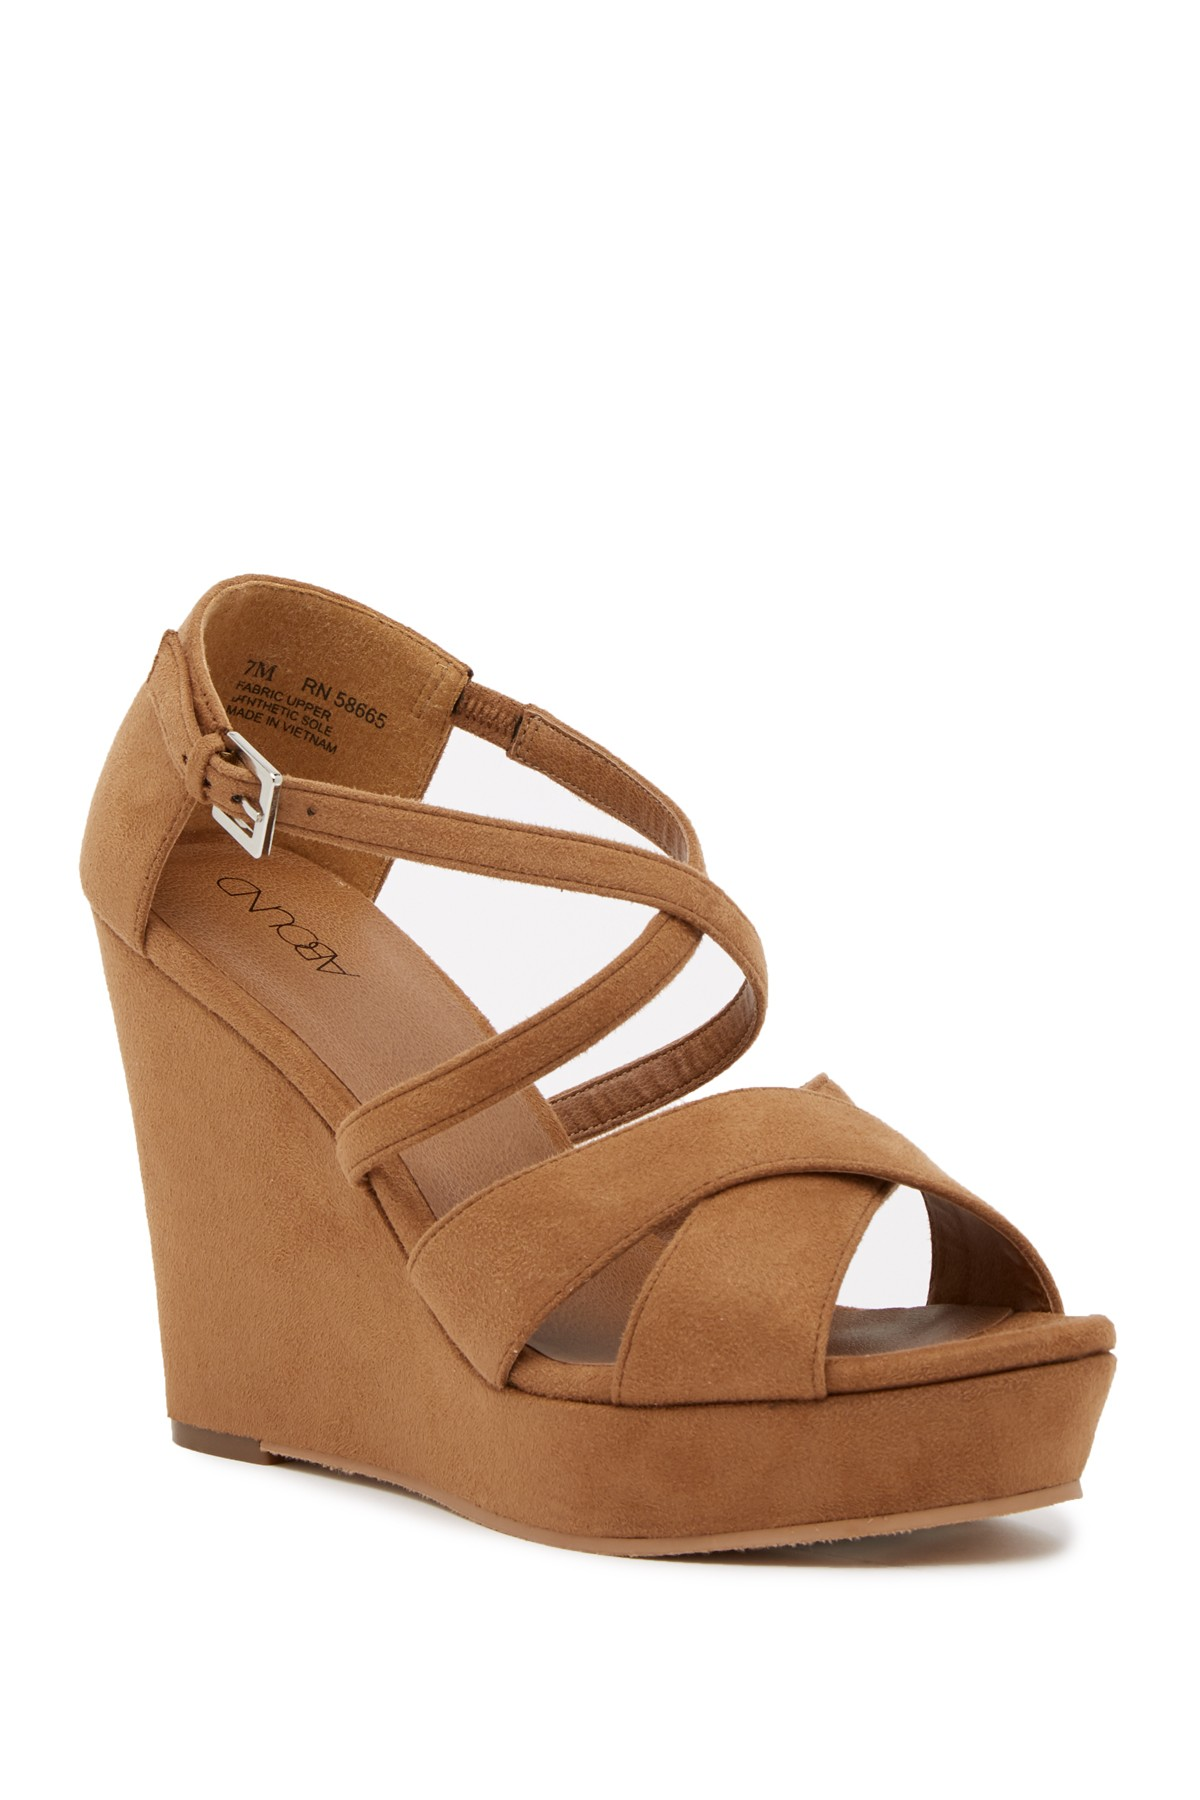 Abound Bria Platform Wedge Sandal | Wedges, Platform wedge